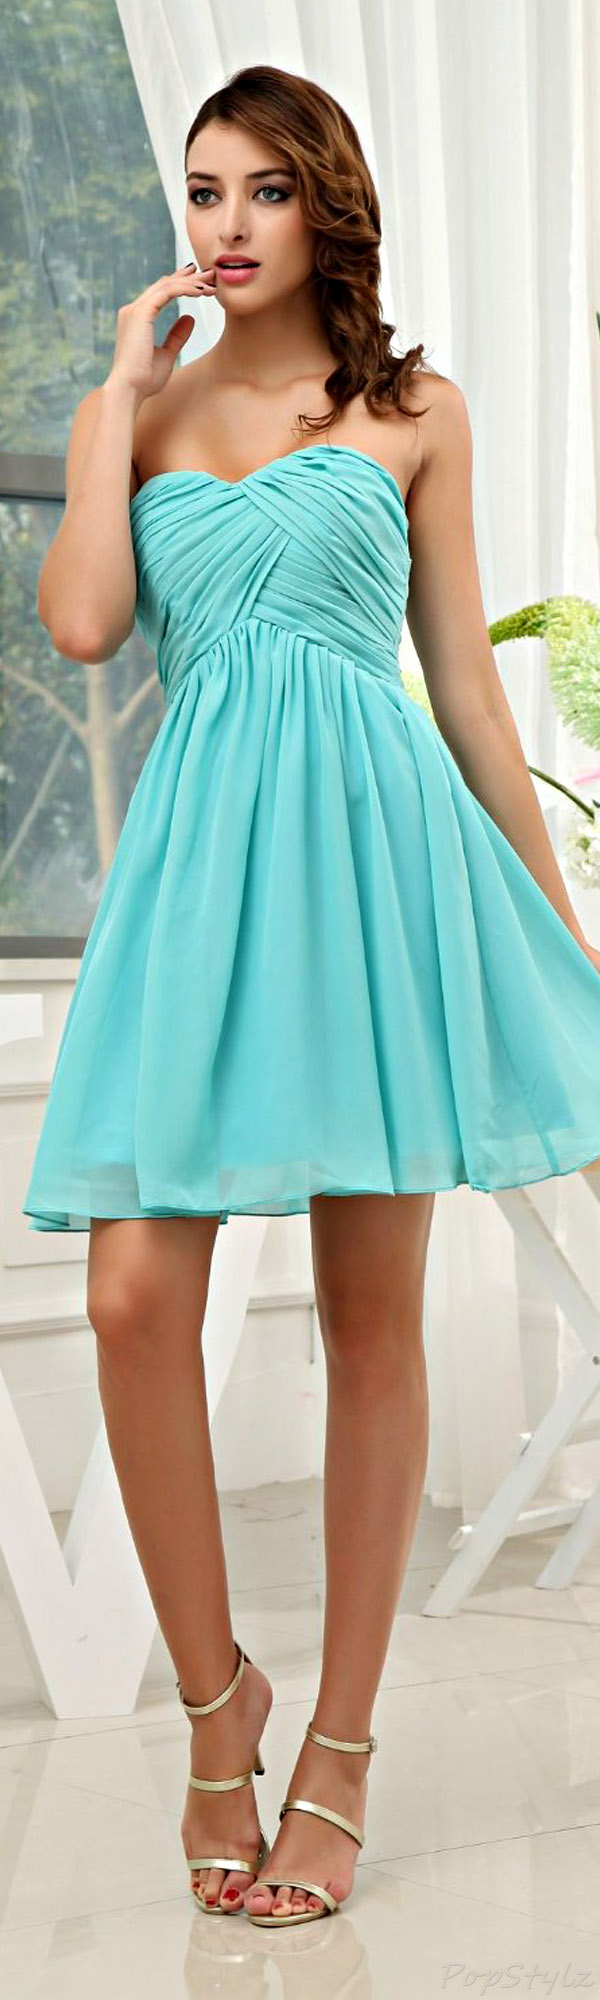 Honeystore Chiffon Sweetheart Mini Dress